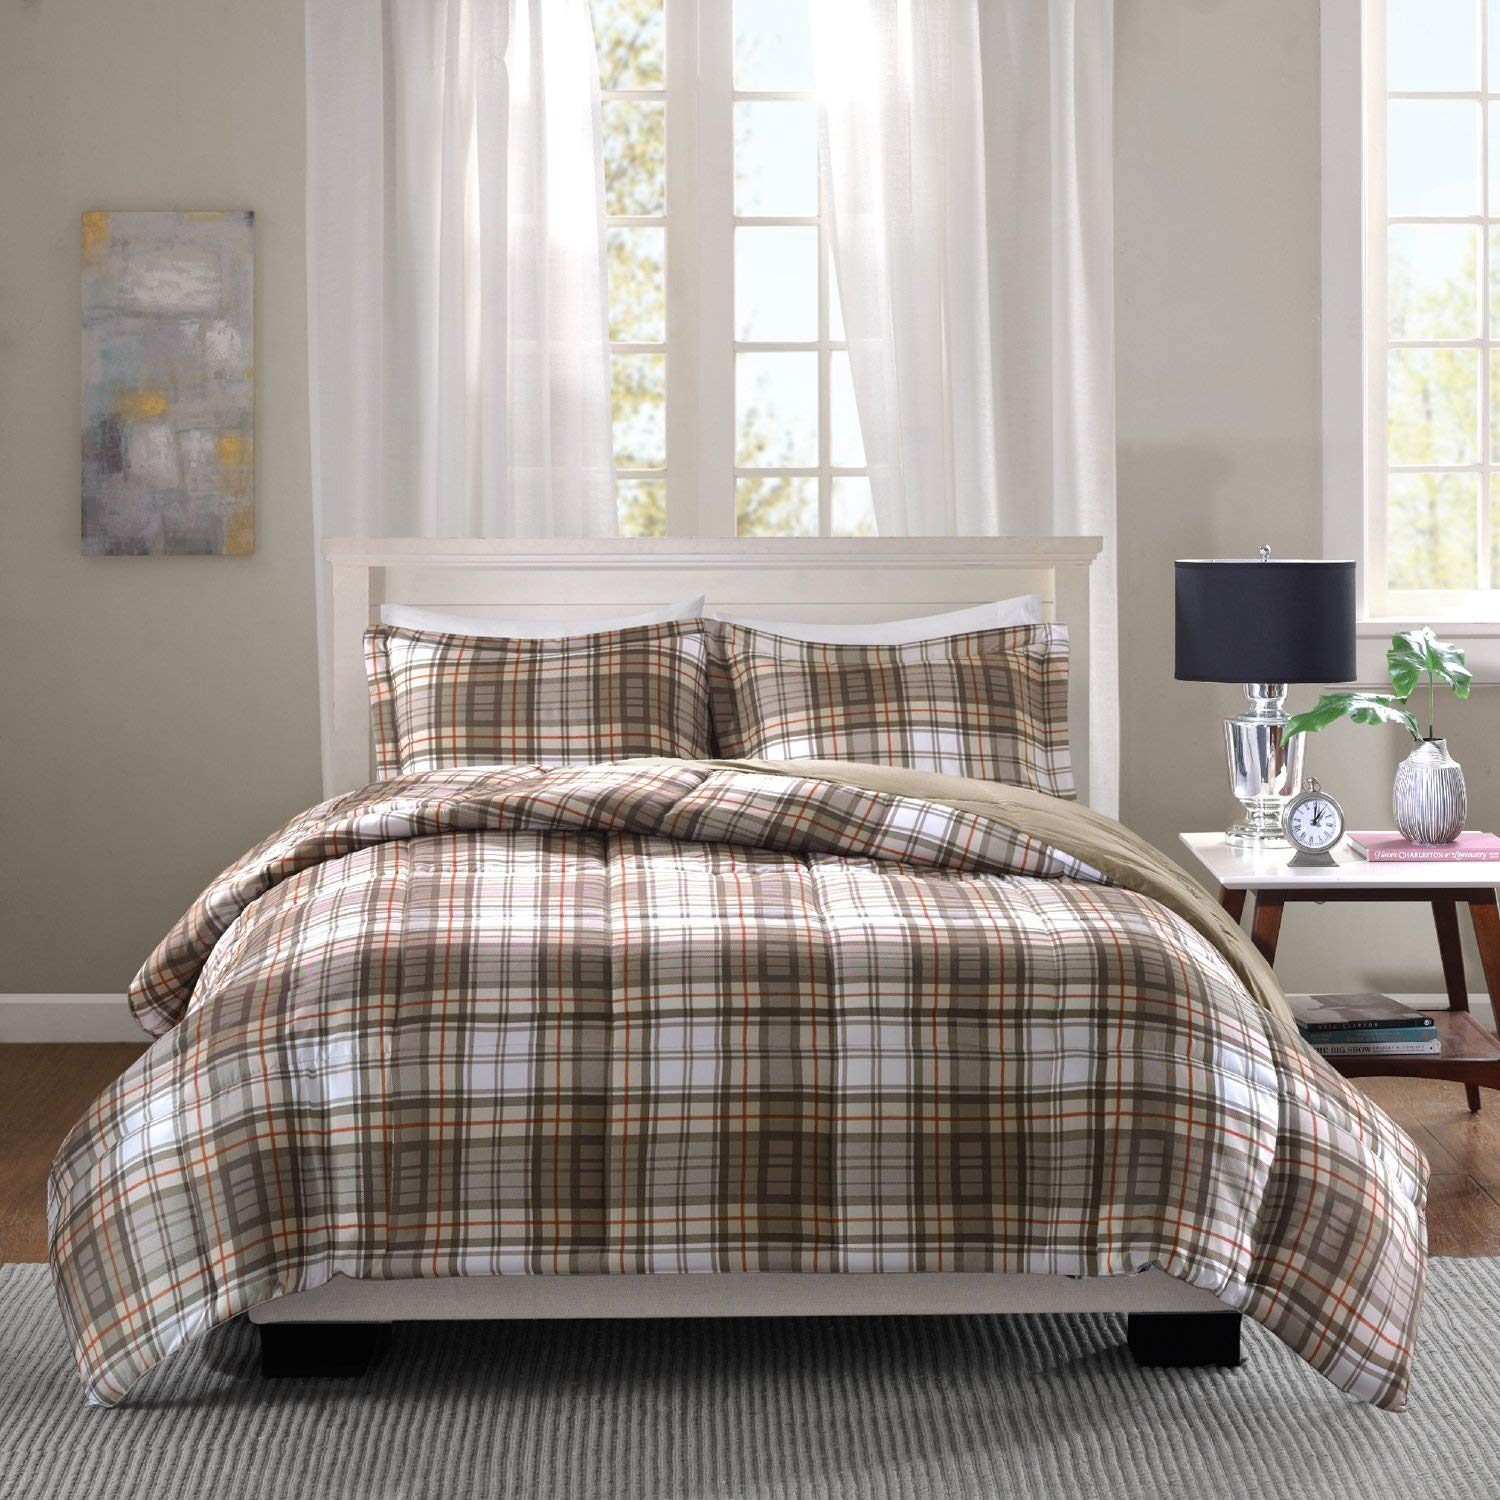 Get Quotations Ca 2 Piece White Red Tan Brown Buffalo Checked Comforter Twin Xl Set